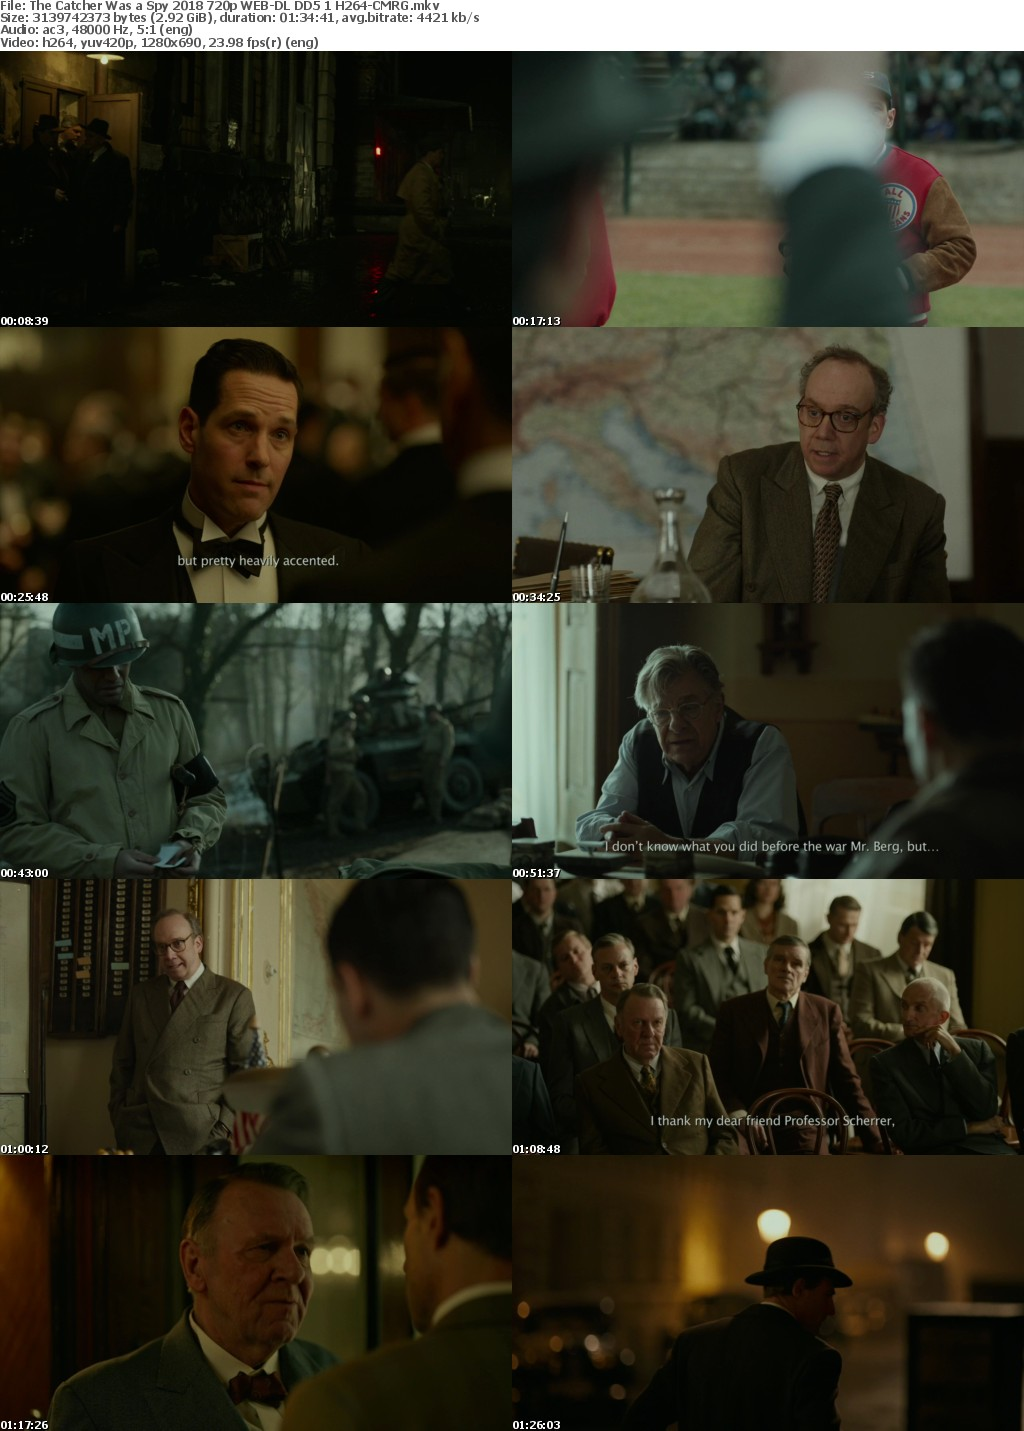 The Catcher Was a Spy 2018 720p WEB-DL DD5 1 H264-CMRG